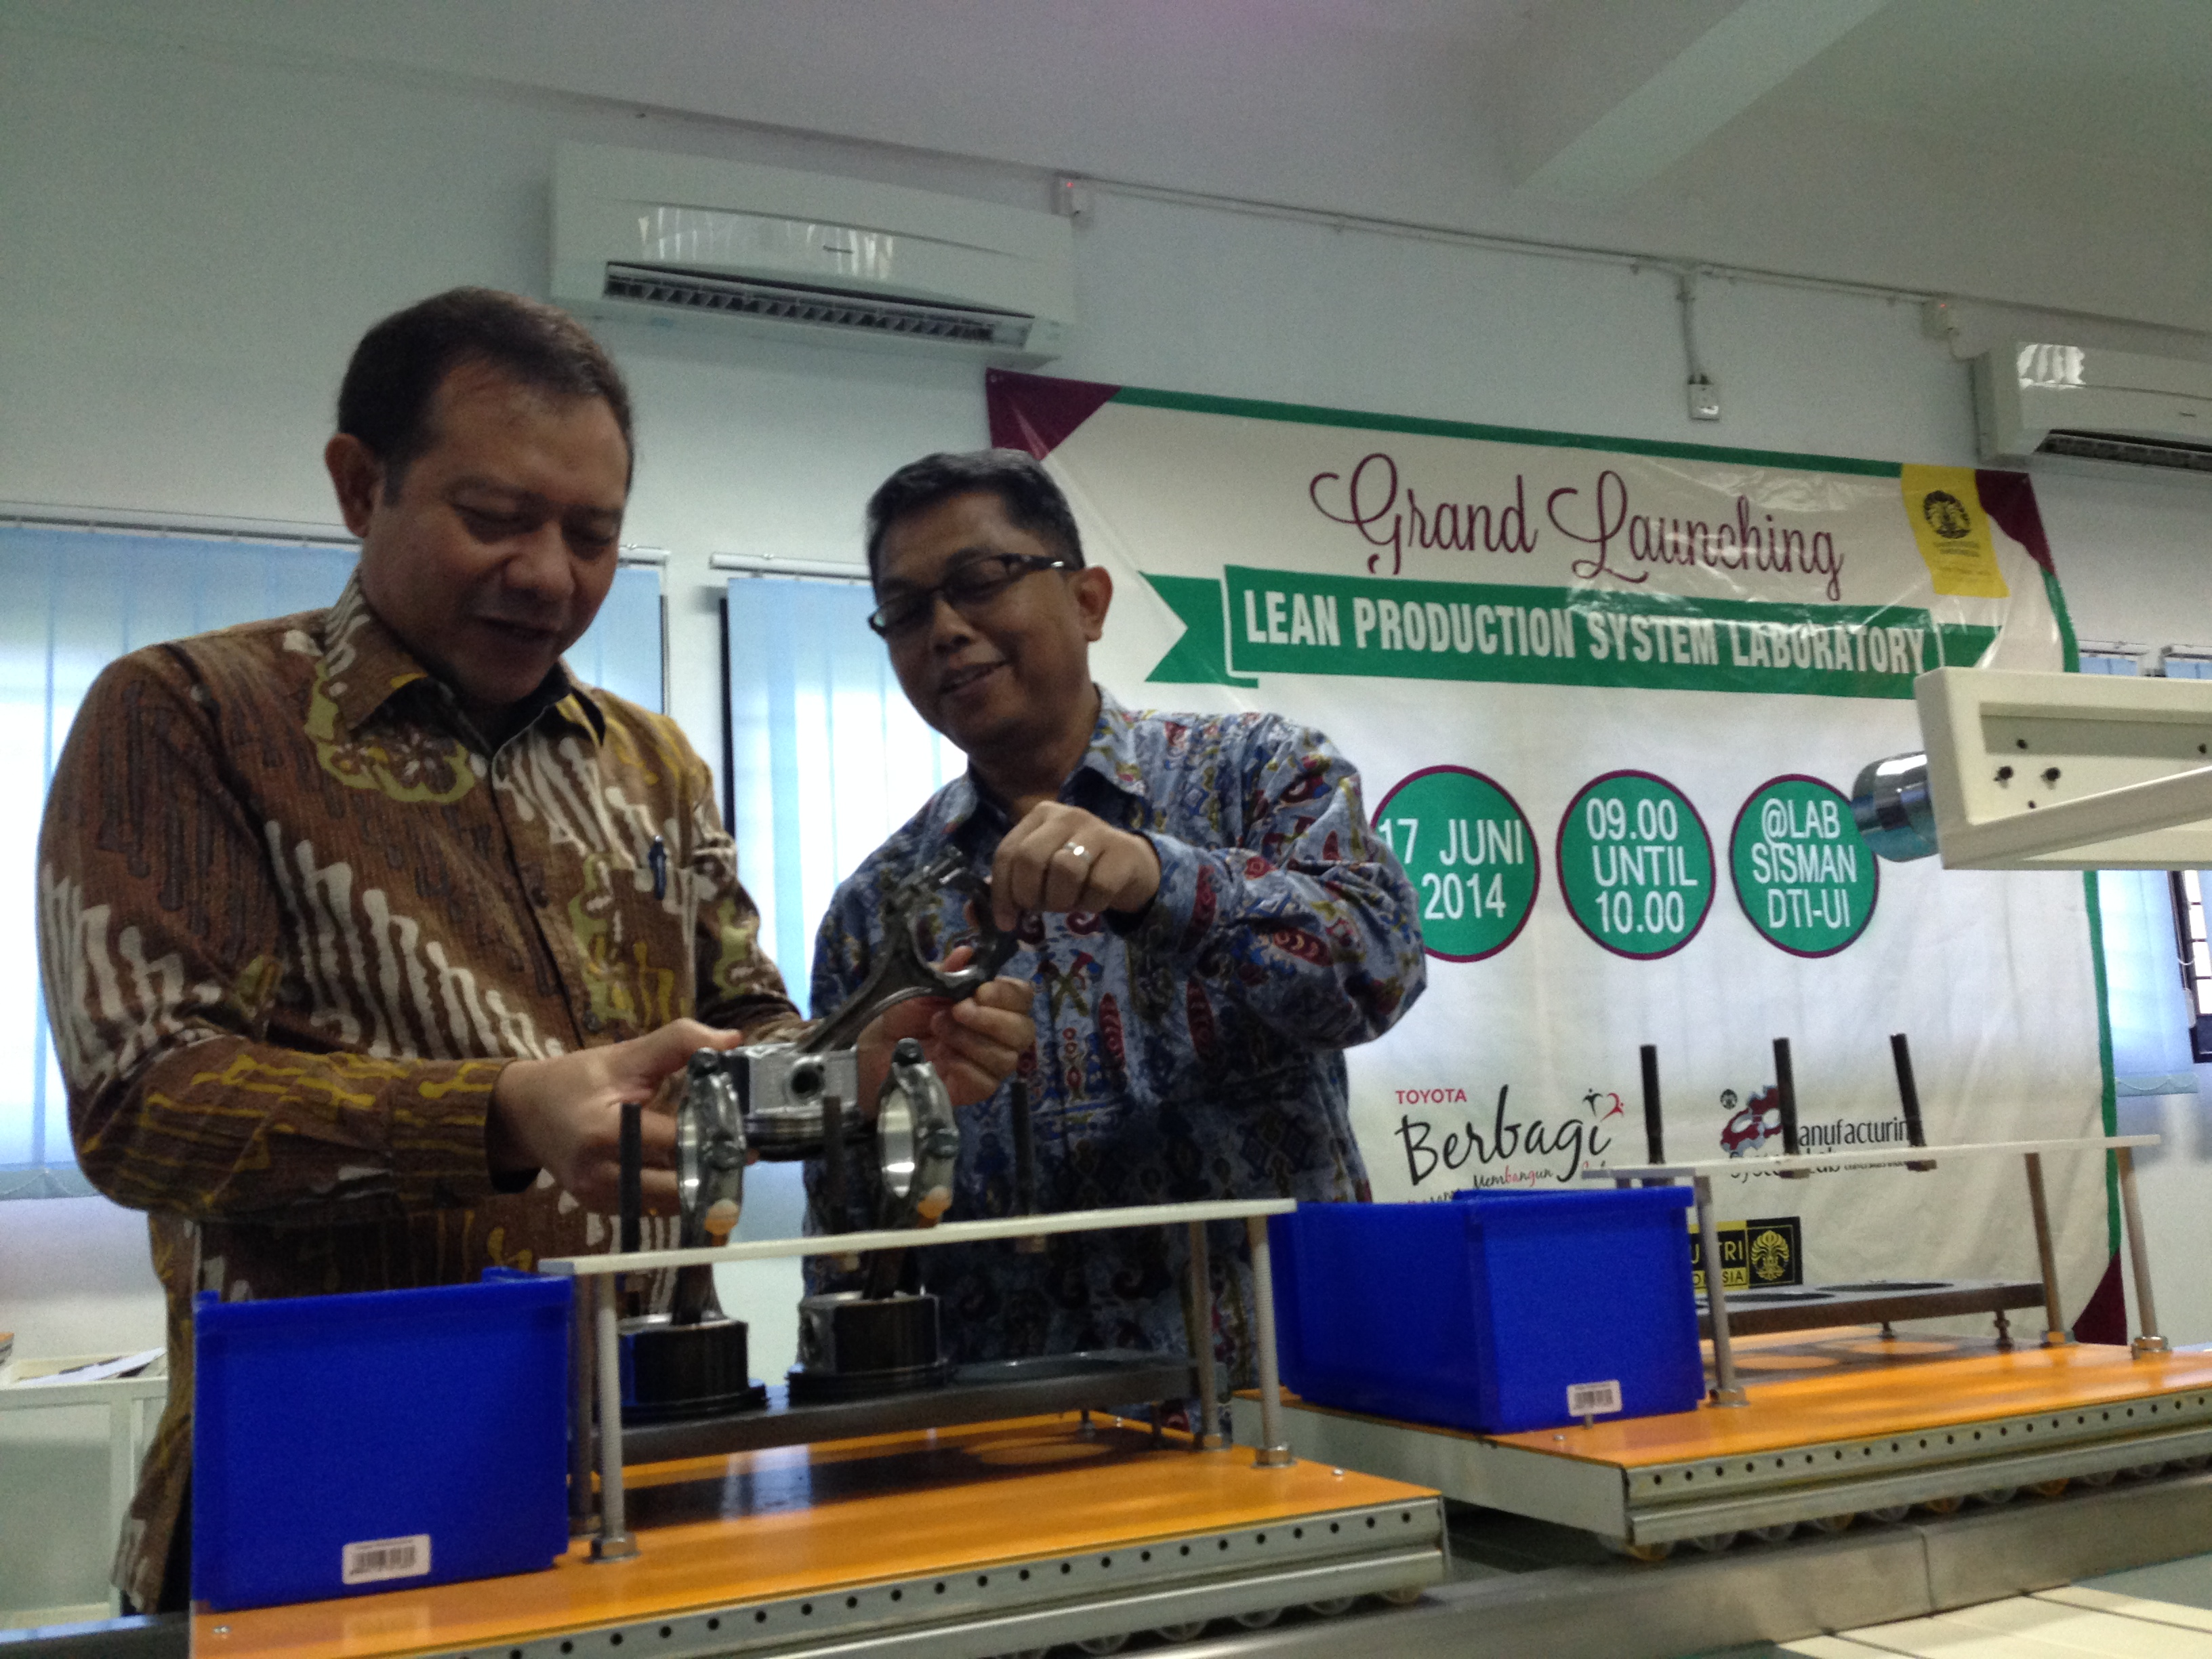 Bantuan Lab. Lean Prod Mfg UI 2014